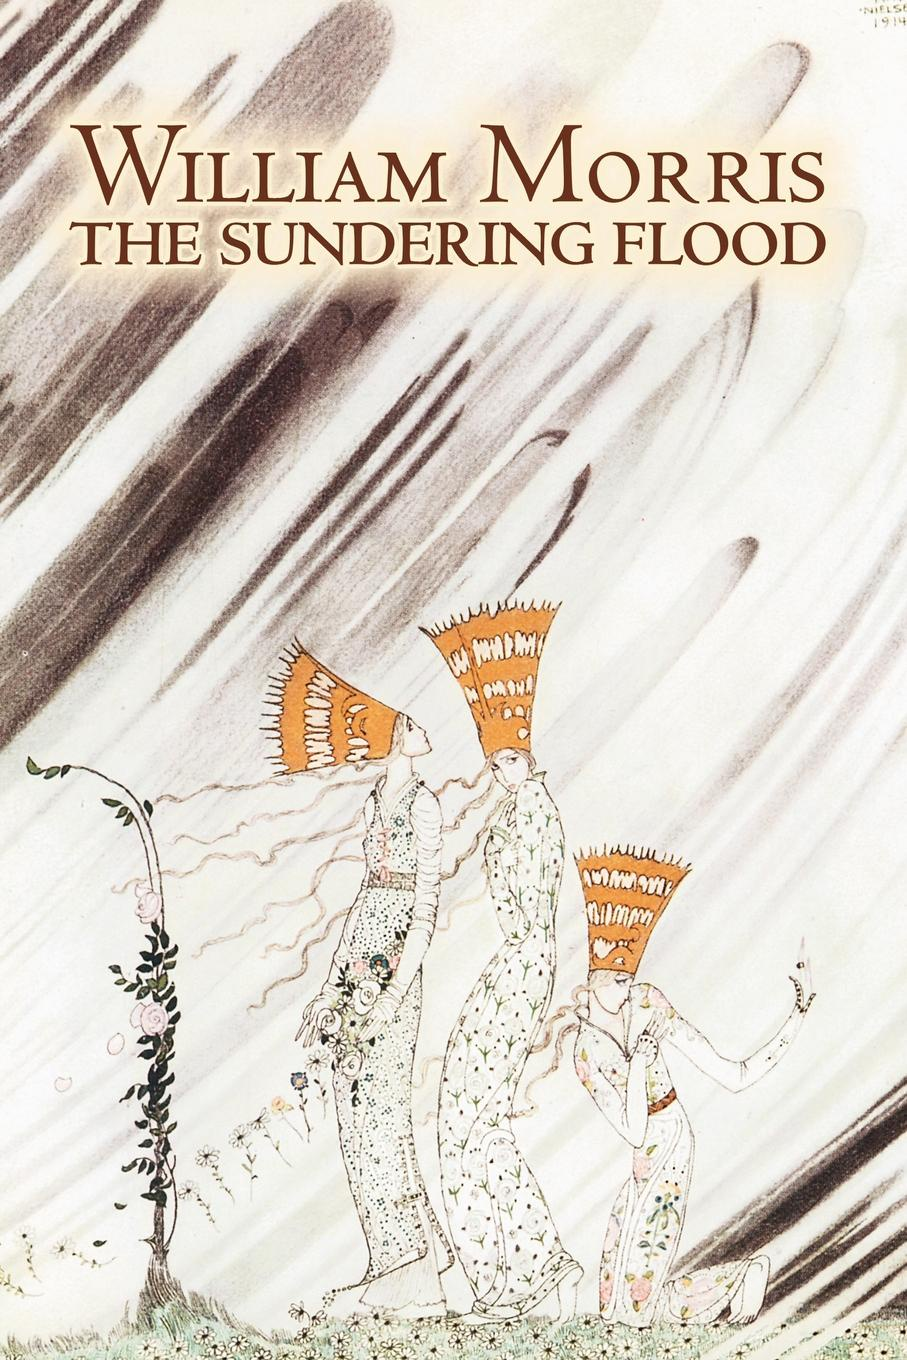 William Morris The Sundering Flood by Wiliam Morris, Fiction, Fantasy, Fairy Tales, Folk Tales, Legends & Mythology